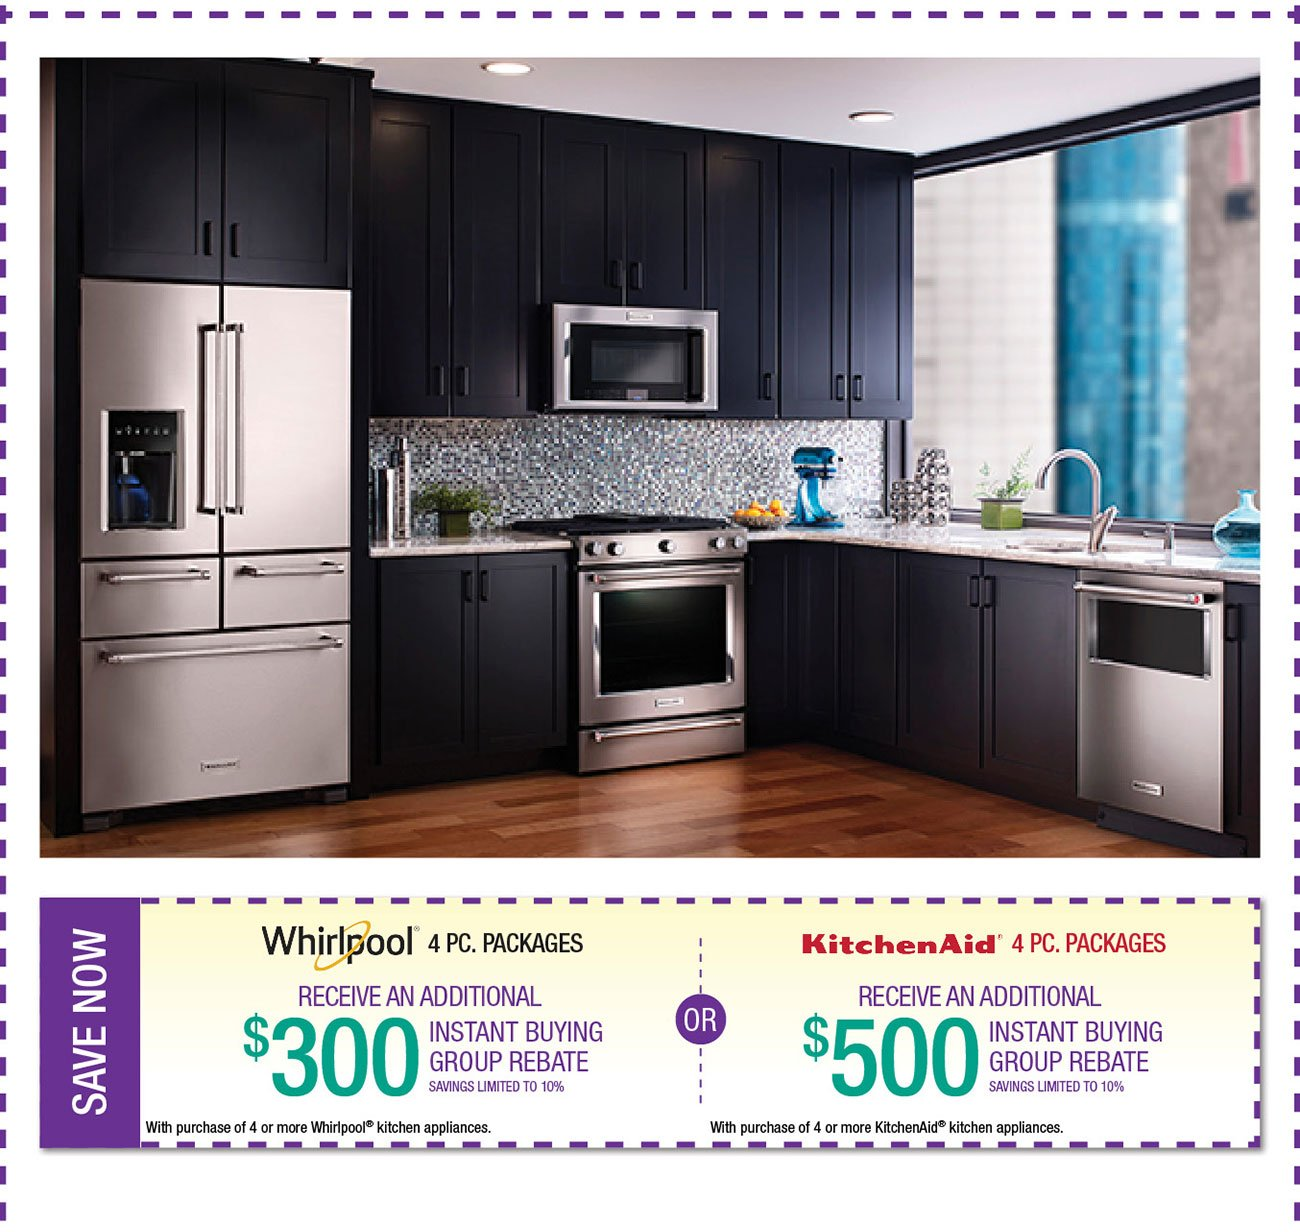 Whirlpool-and-kitchenaid-coupon